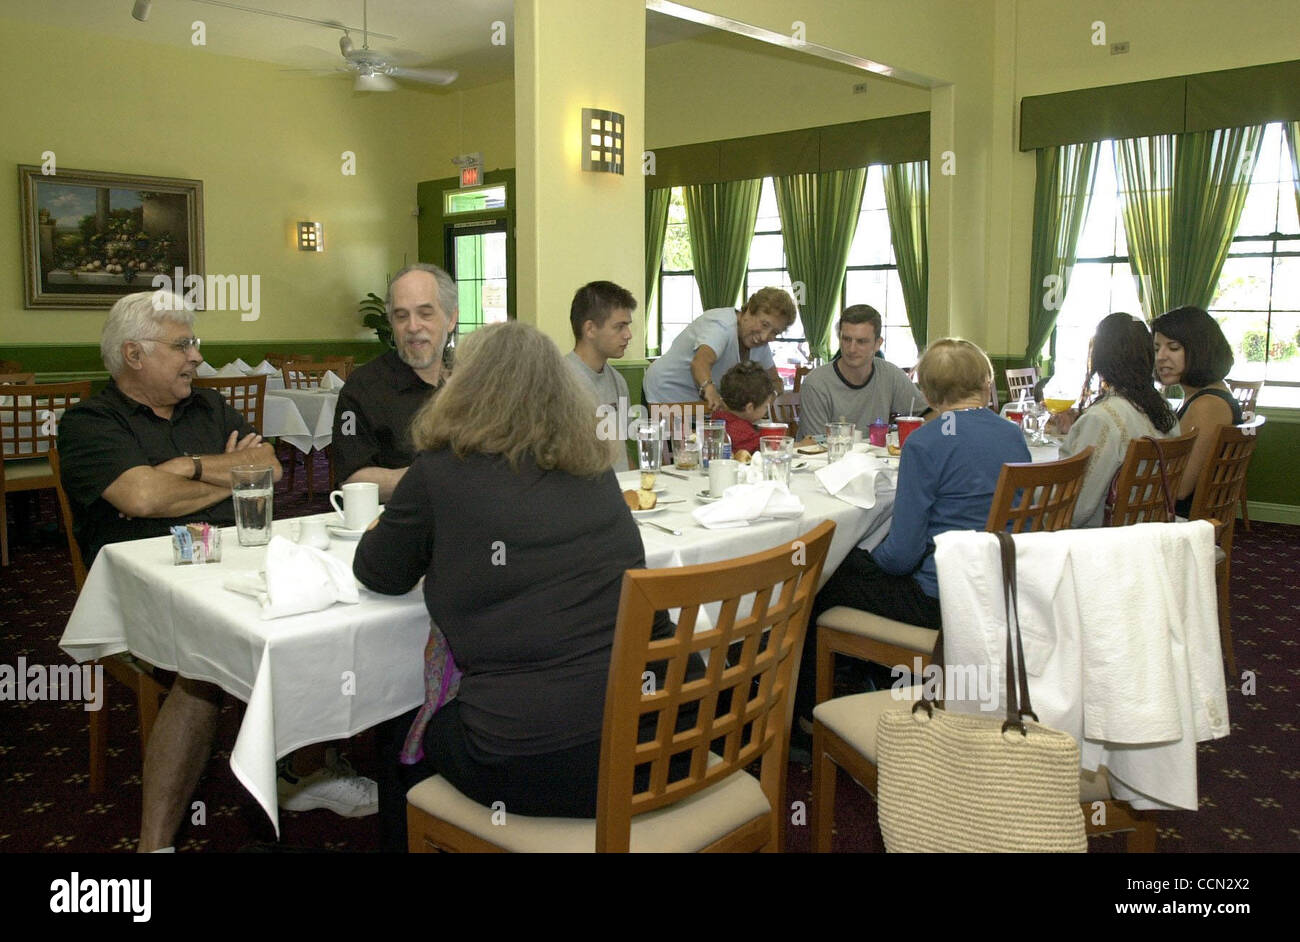 The dining room at Albany Bistro on Sunday afternoon on July 18, 2004 in Albany, Calif. (CONTRA COSTA TIMES/EDDIE - Stock Image